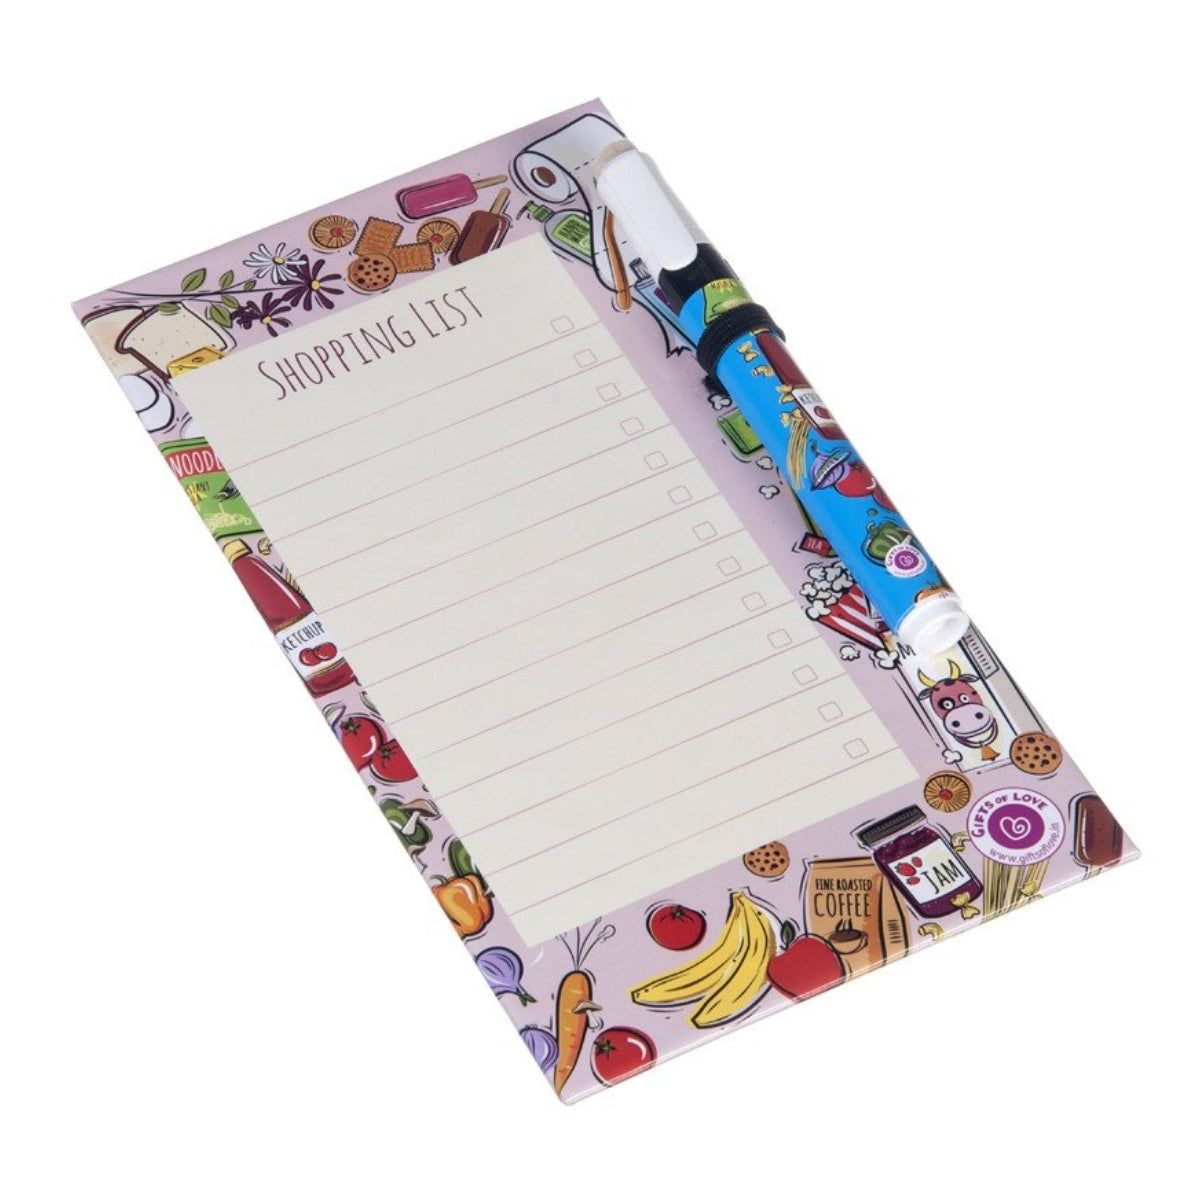 Dry Erase Board Small - Shopping List - Lines